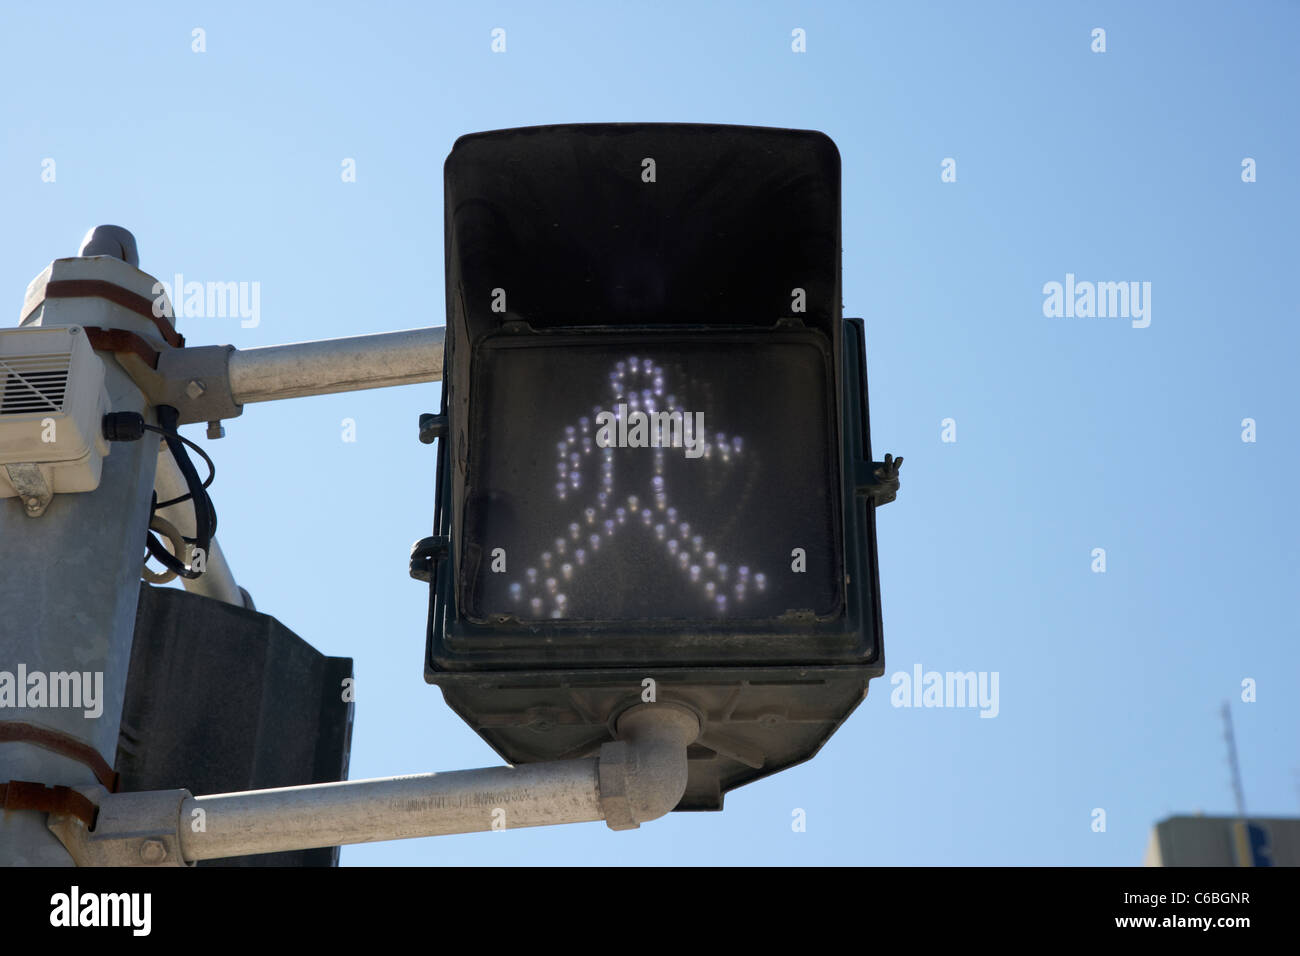 low energy led white man cross pedestrian crossing sign in downtown winnipeg manitoba canada - Stock Image